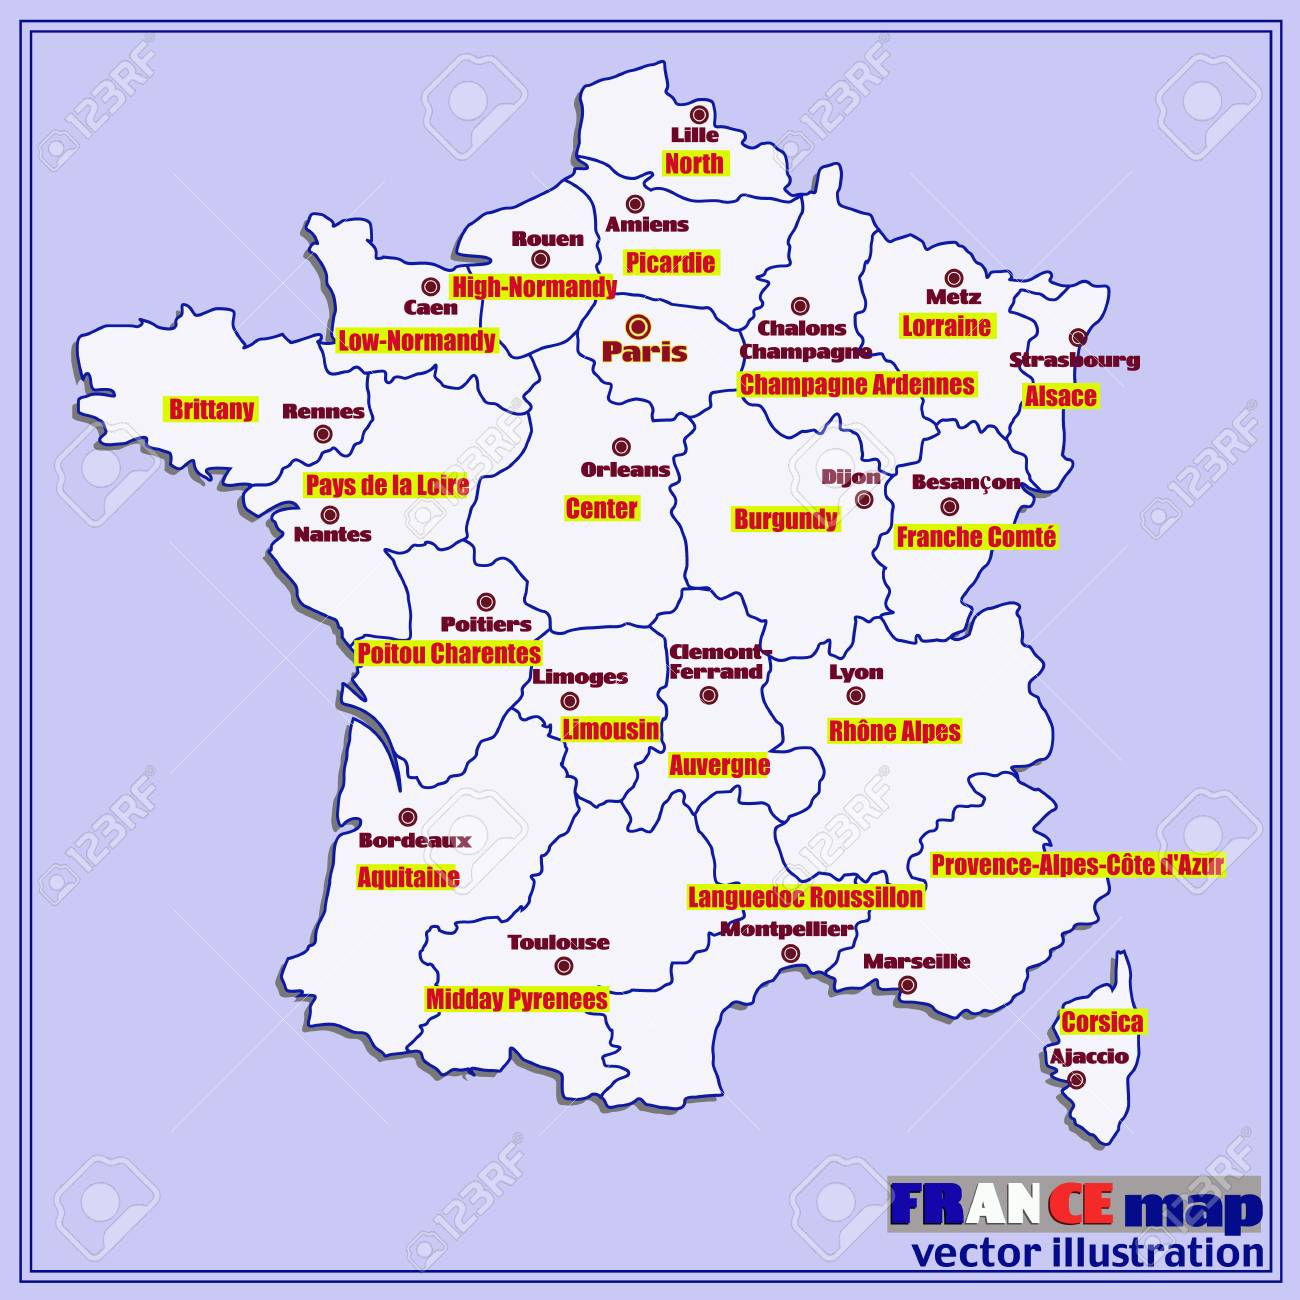 Map Of France In French.Map Of France With French Regions Vector